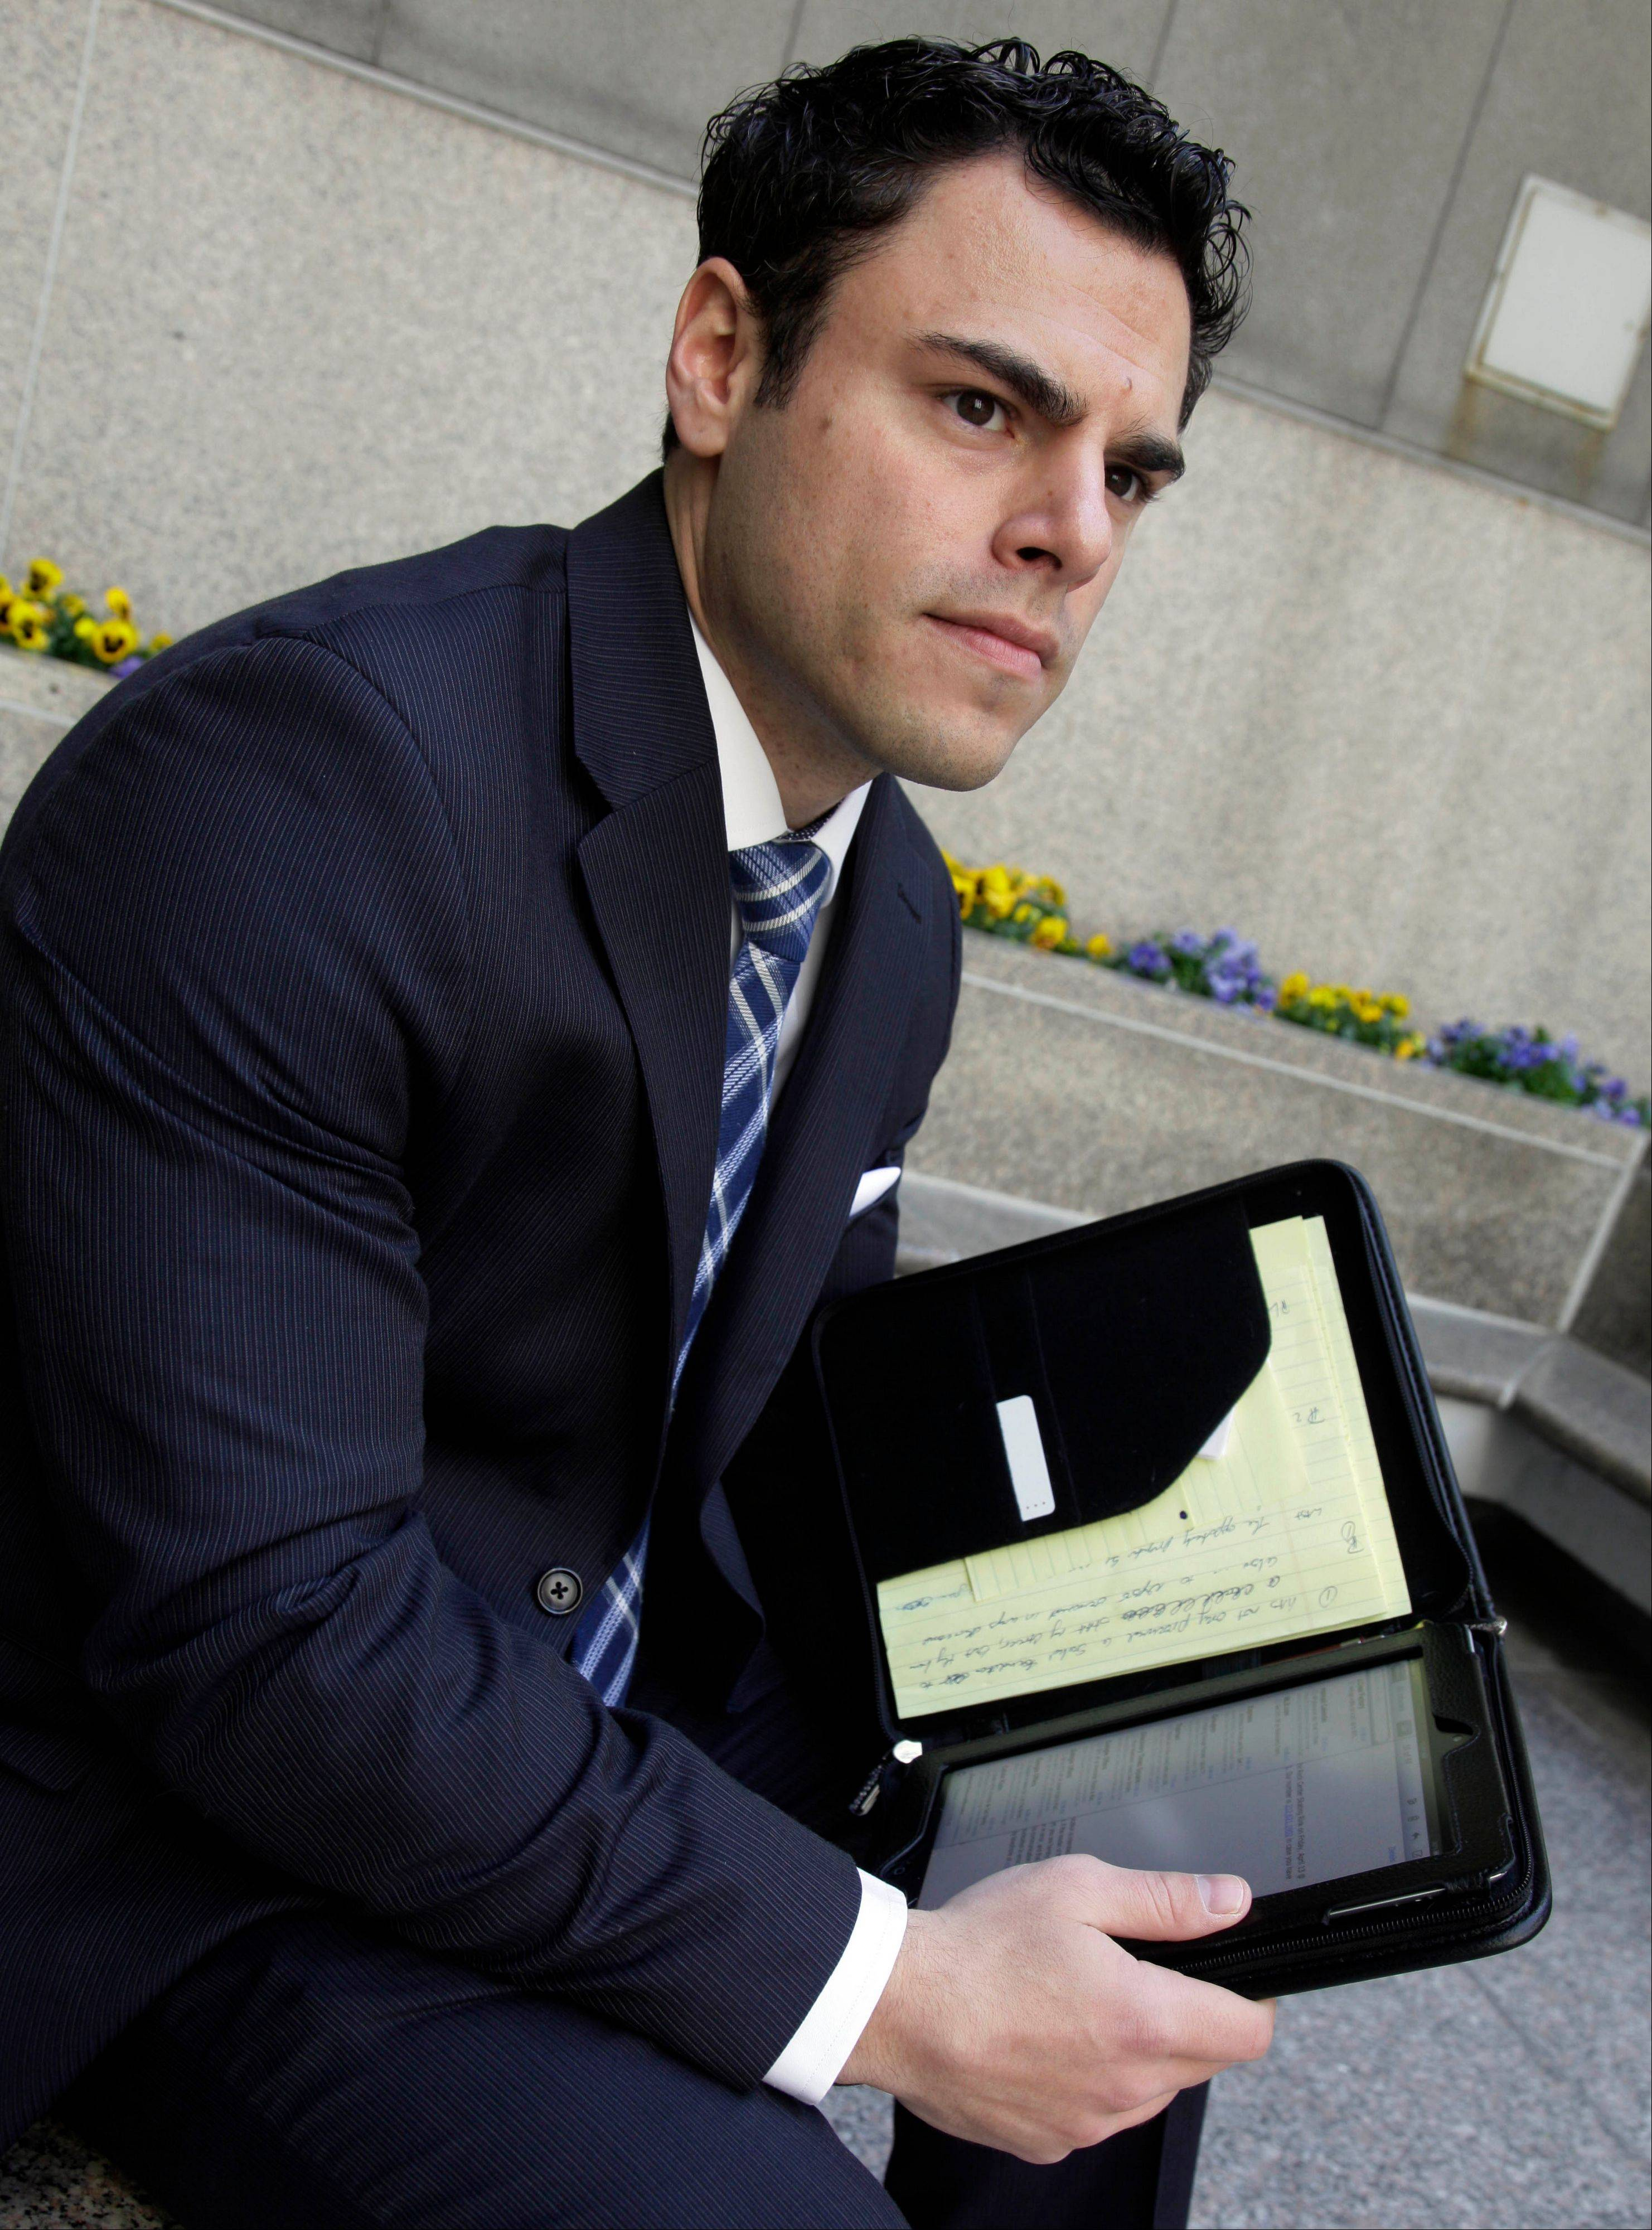 "Matthew Pizzo, an Air Force veteran, who has law and business degrees and wants to find work in financial or business areas, keeps his resume on his iPad in New York. One potential employer, he says, surprised him by saying: '""You're a little old to try to start working in the banking industry.'"" The 29-year-old, he suggested, might be uncomfortable taking orders from a younger boss. Pizzo senses trepidation, too, from prospective bosses, who may be leery of his wartime experience. ""I think they're probably concerned, or at least it's in the back of people's minds that I won't be able operate in their landscape, maybe because of things I've seen."""